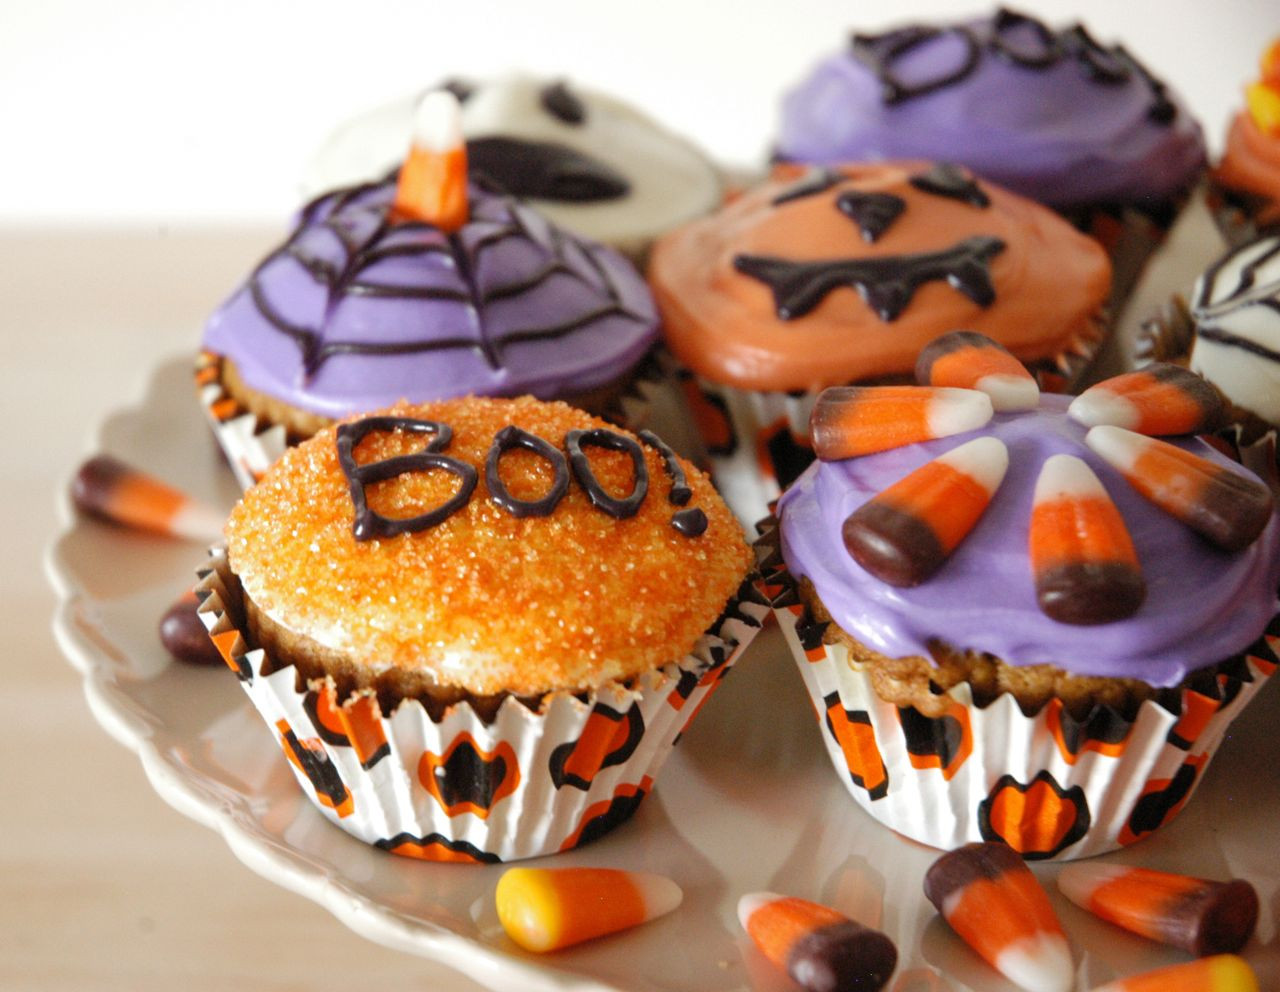 Picture Of Halloween Cupcakes  Goddess of Baking Spiced Pumpkin Cupcakes for Halloween